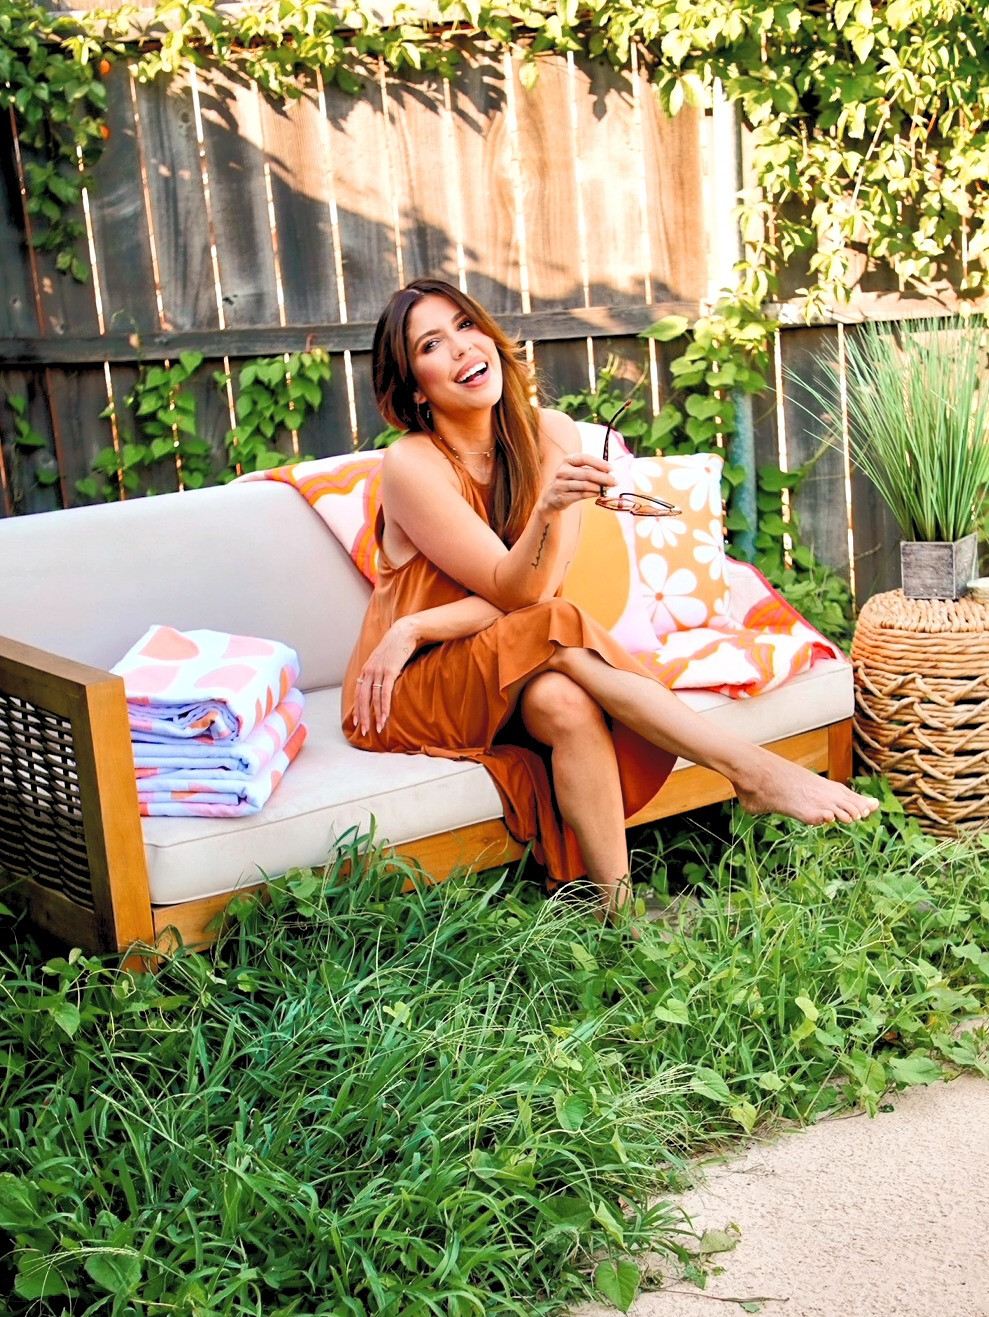 Brittany Kroll, The Luxxe Look, The Luxxe Beauty Company, Dallas Entrepreneur